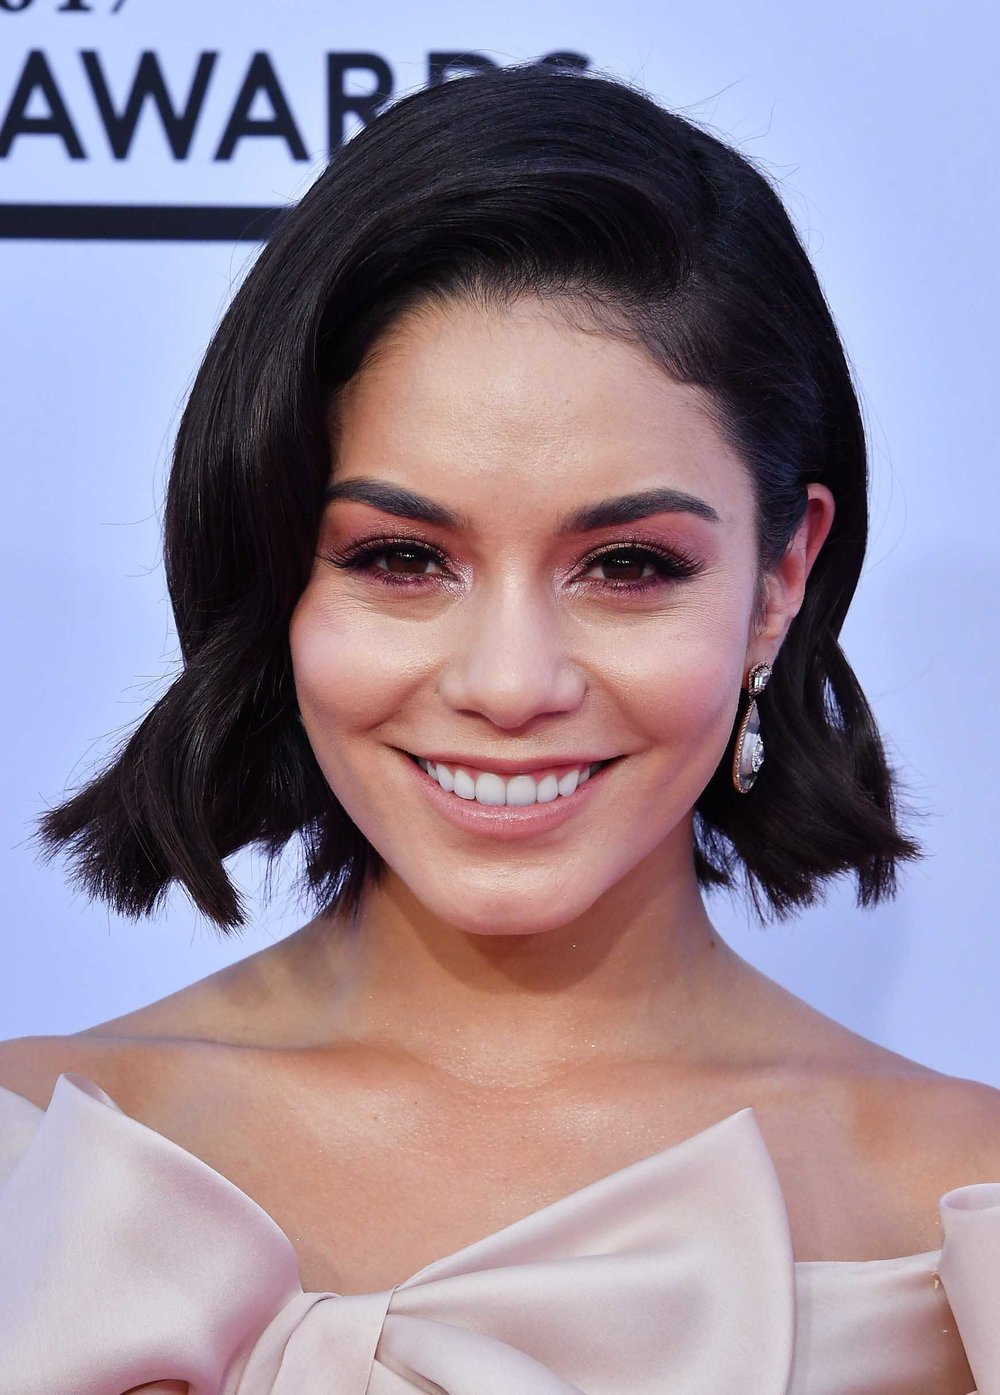 hair-vanessahudgens-brun-lob-sidepart-wavy-bob-earrings.jpg